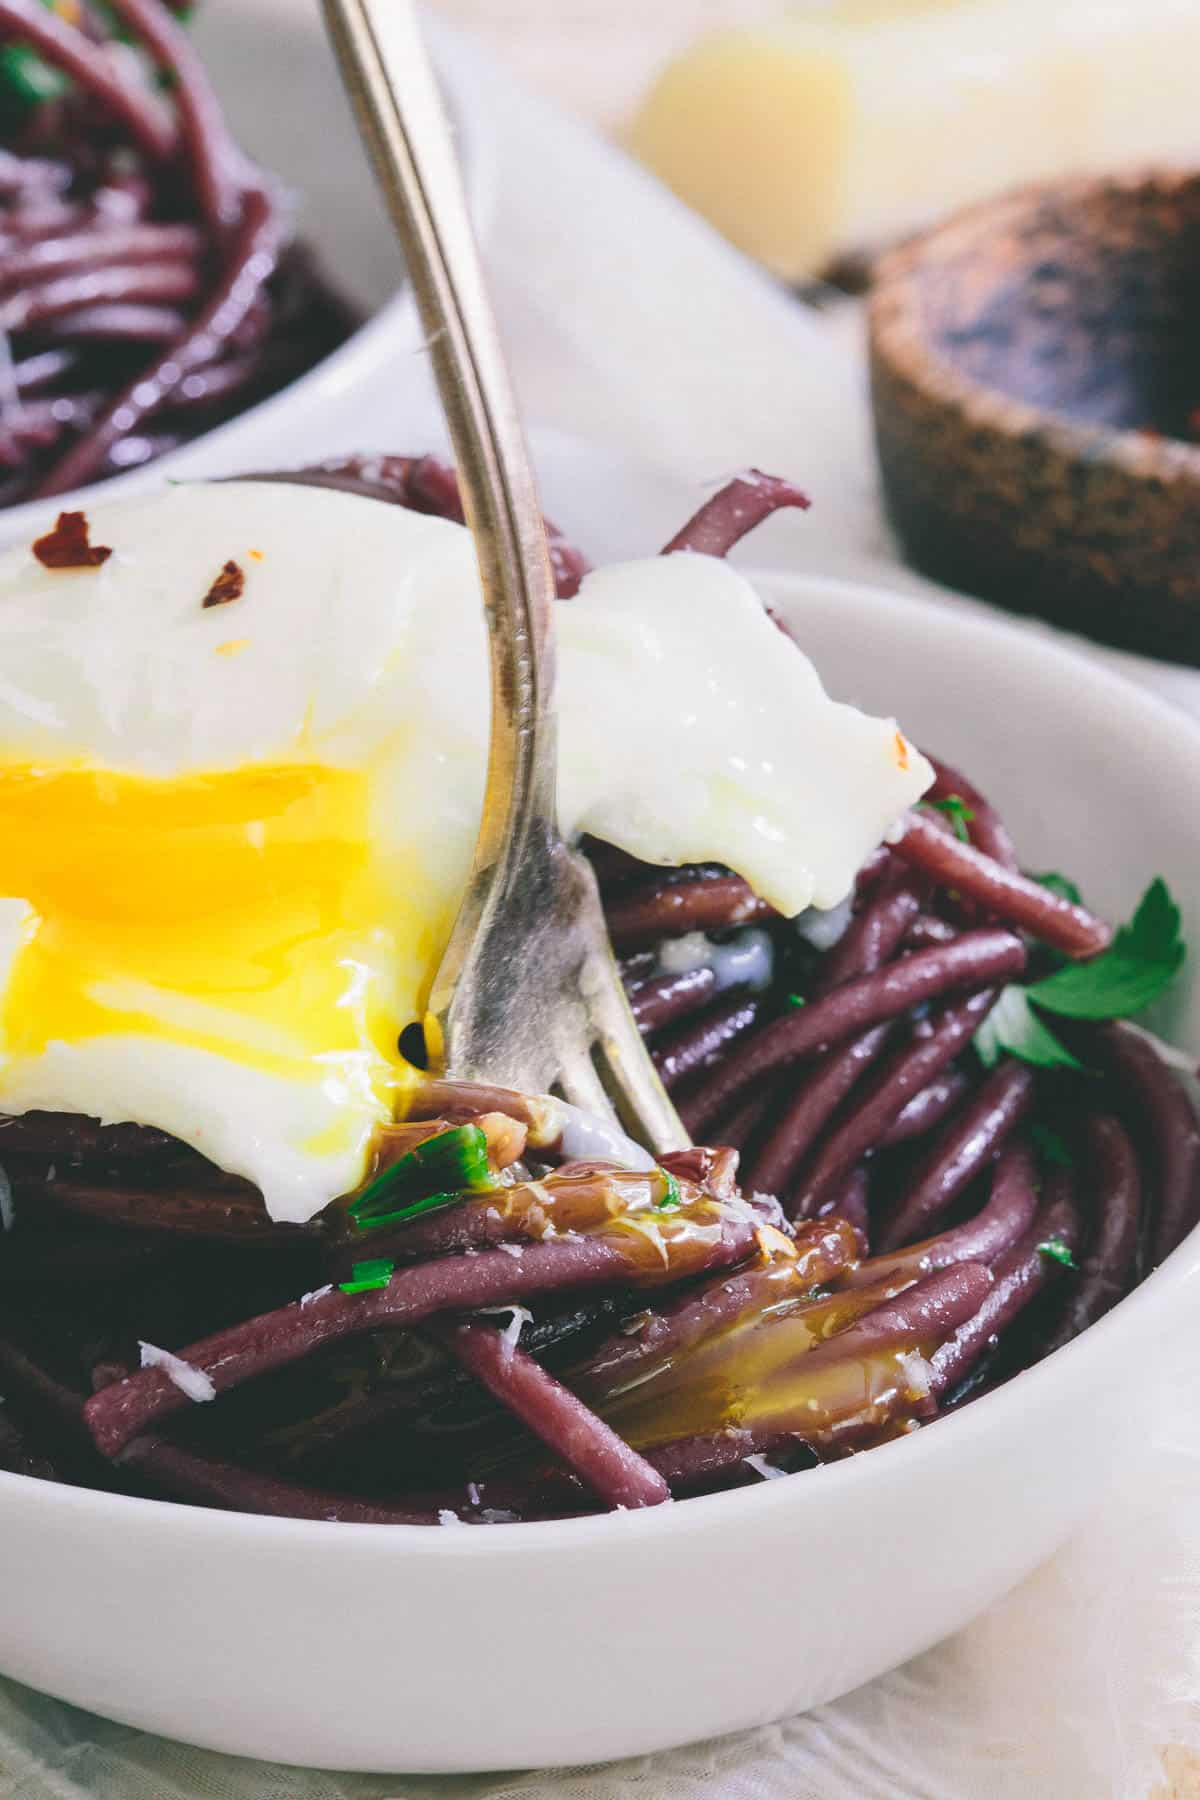 Cooking the pasta in red wine gives this bucatini it's gorgeous color. Top with a soft boiled egg for an easy meal!